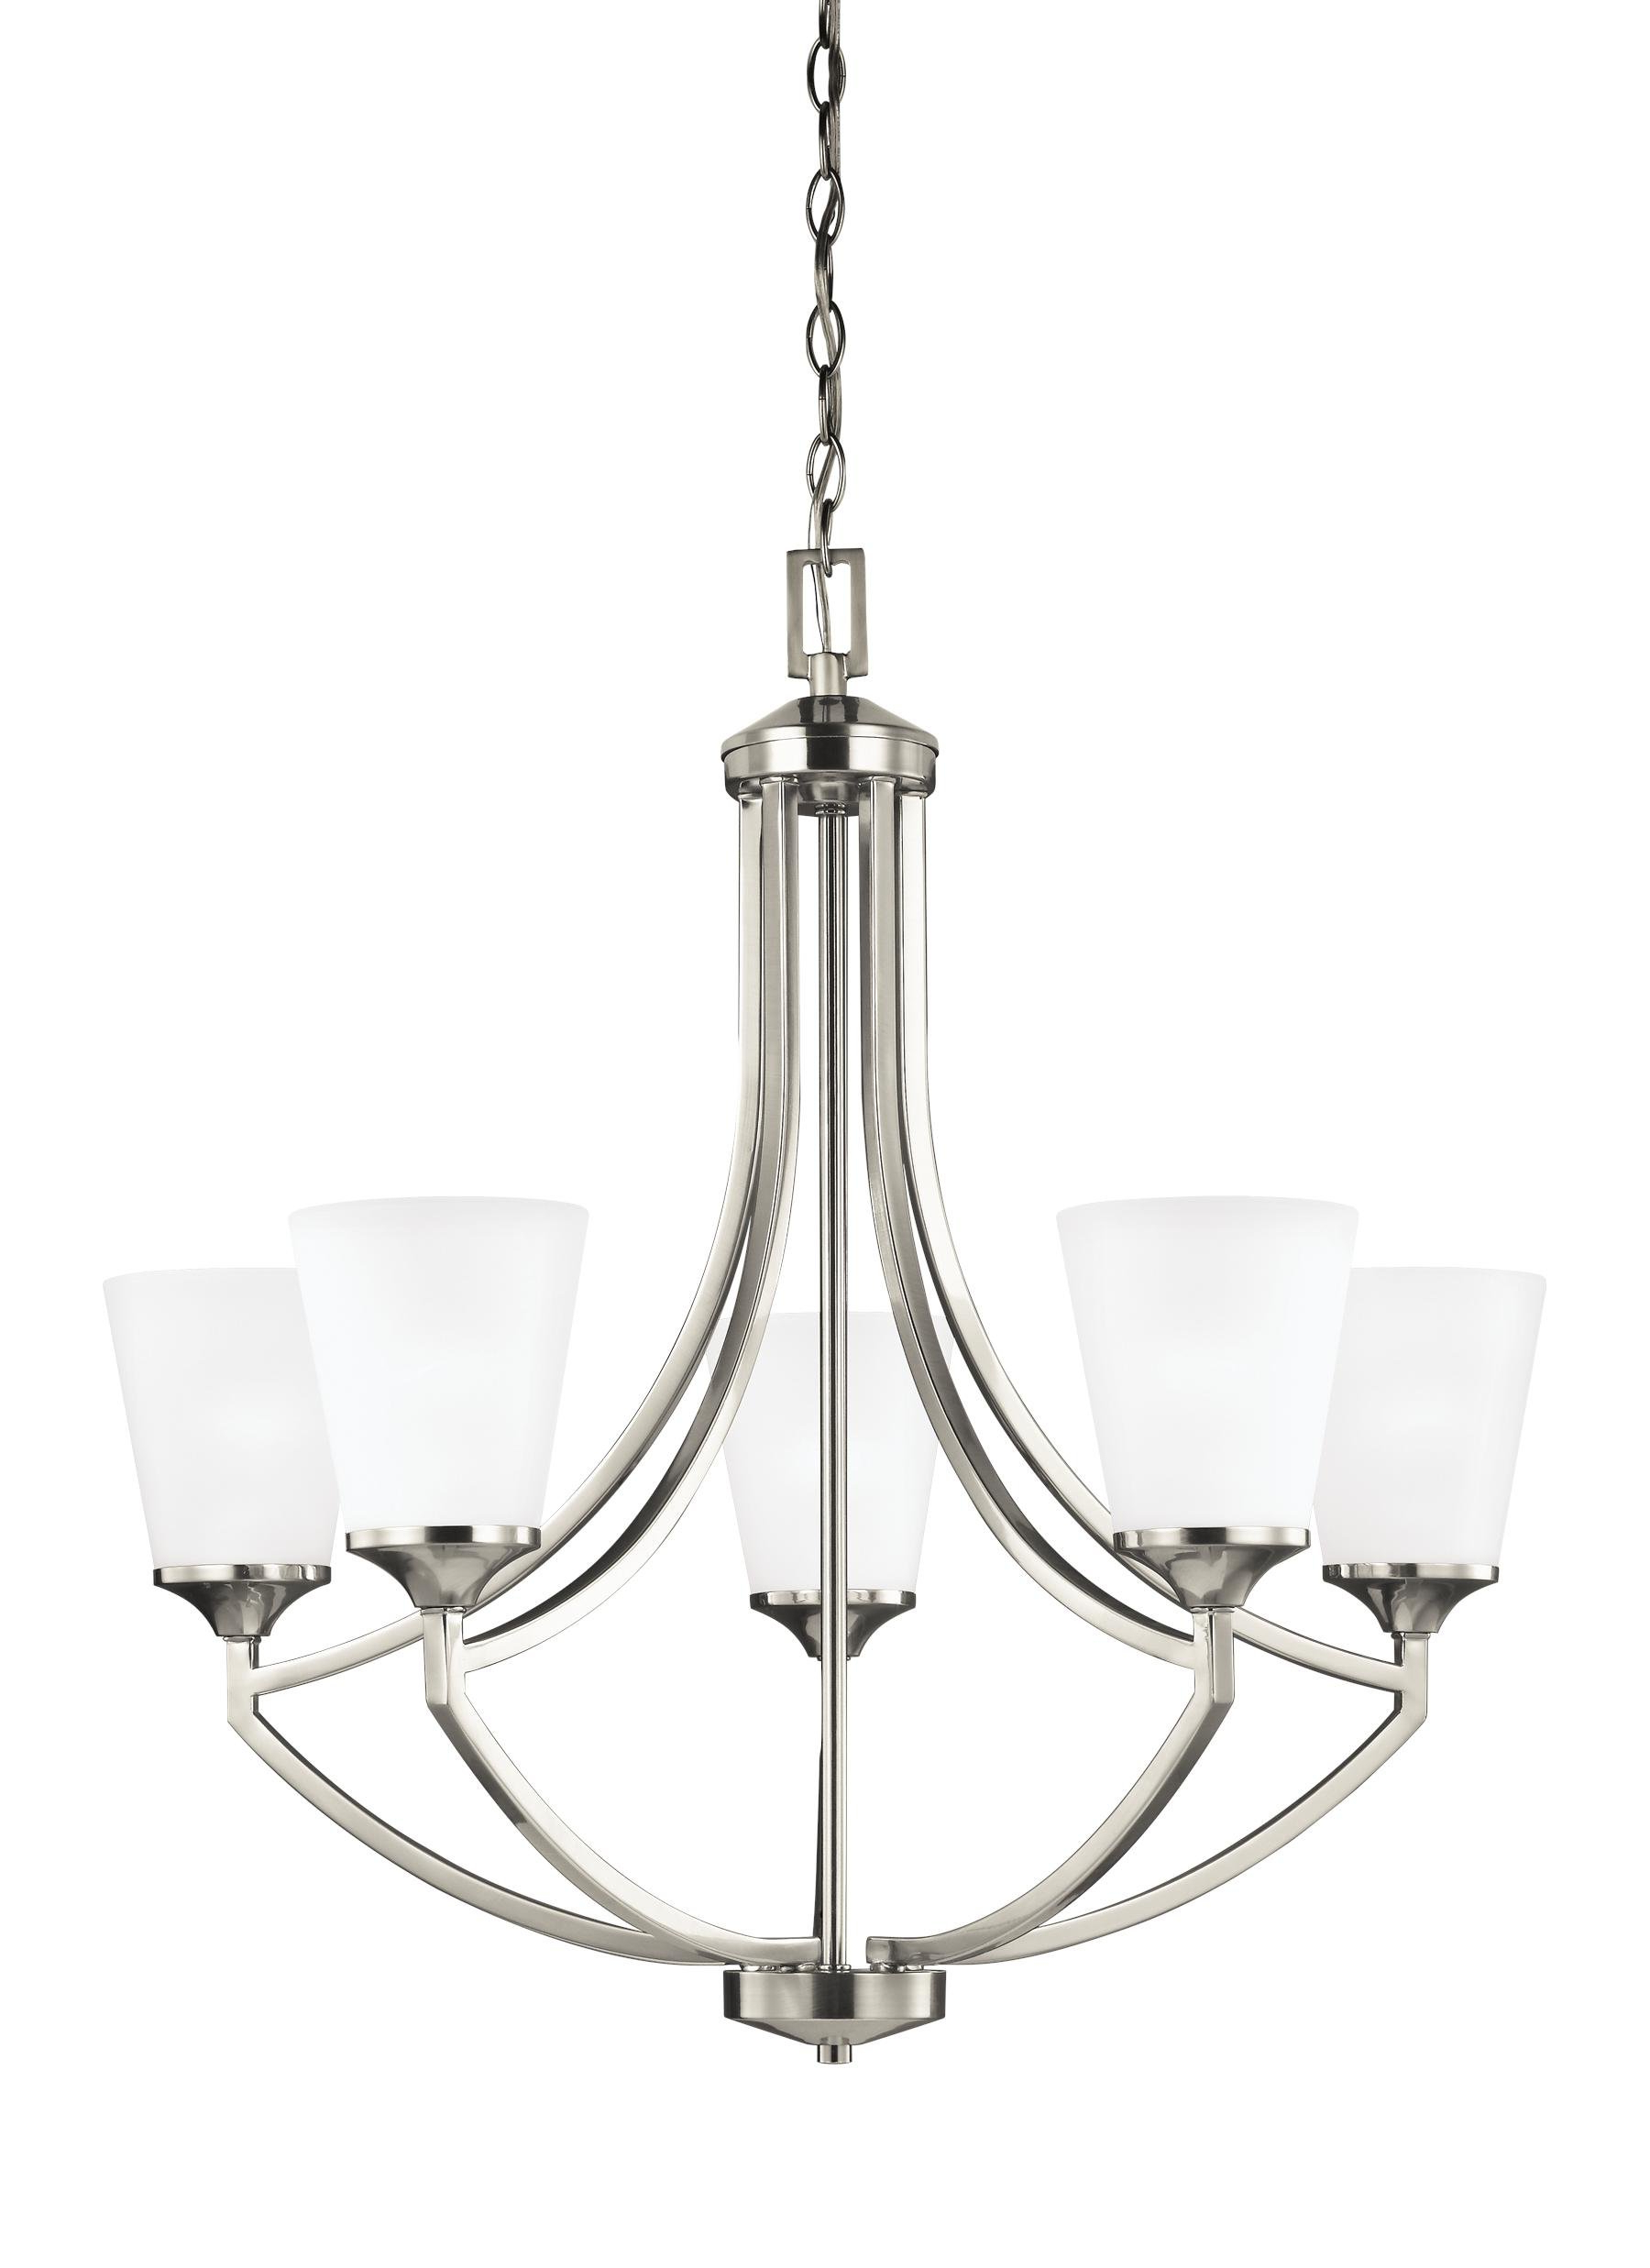 Best And Newest Crofoot 5 Light Shaded Chandeliers Pertaining To Elkton 5 Light Shaded Chandelier (View 8 of 20)